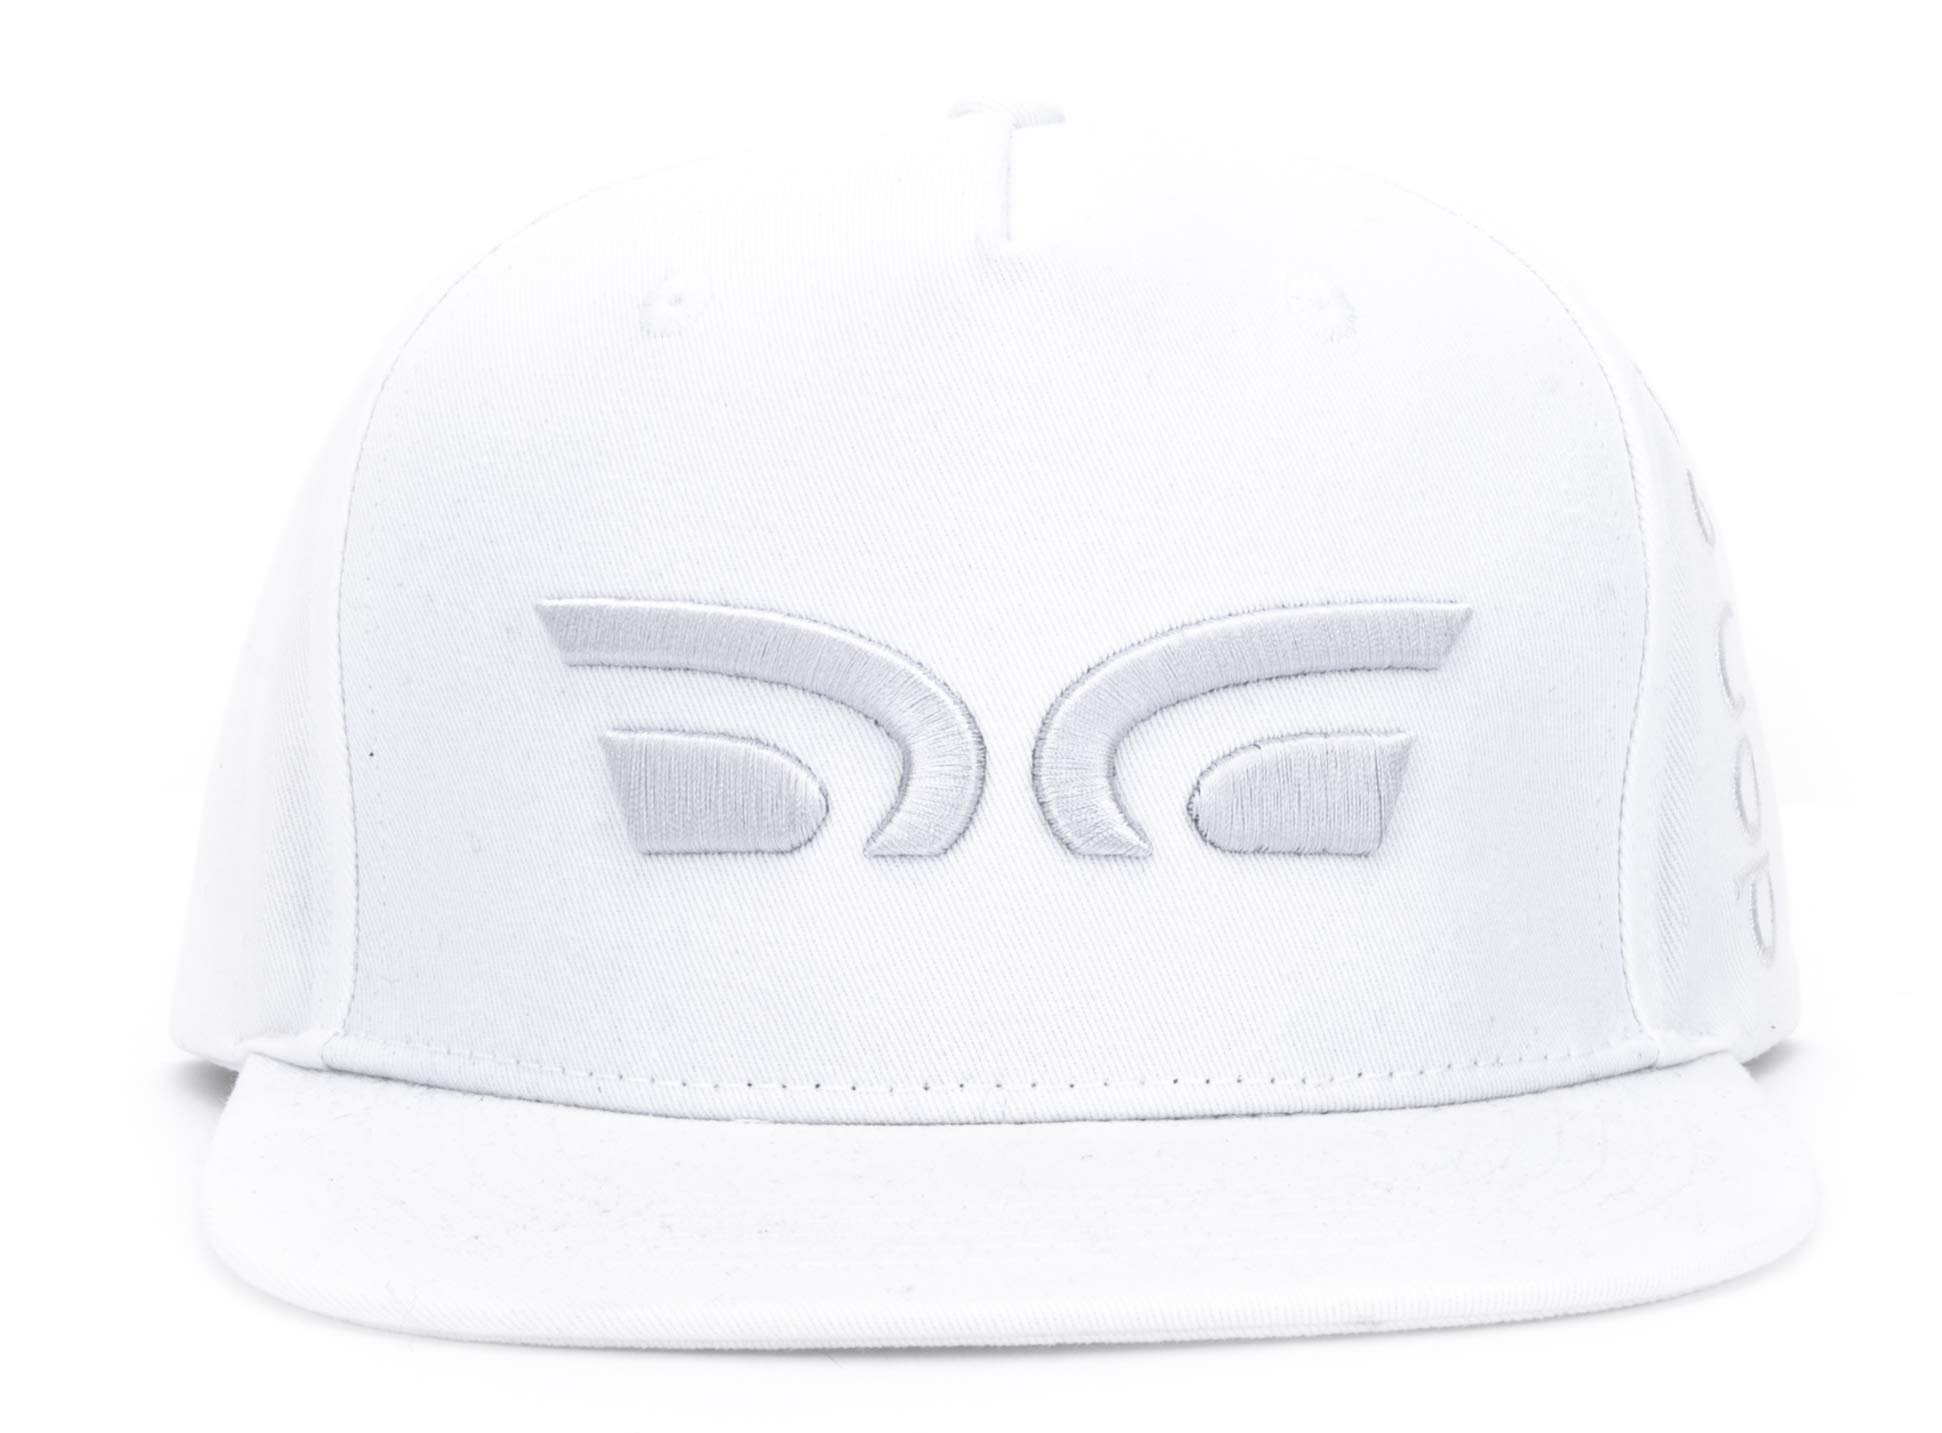 Don Cano | The Classic Cap | Icelandic Baseball Hat | Medium Profile | Embroidered 3D Logo | Fine Cotton Twill Headwear | Adjustable Buckle | One Size Fits All | DC.931 | White & Silver